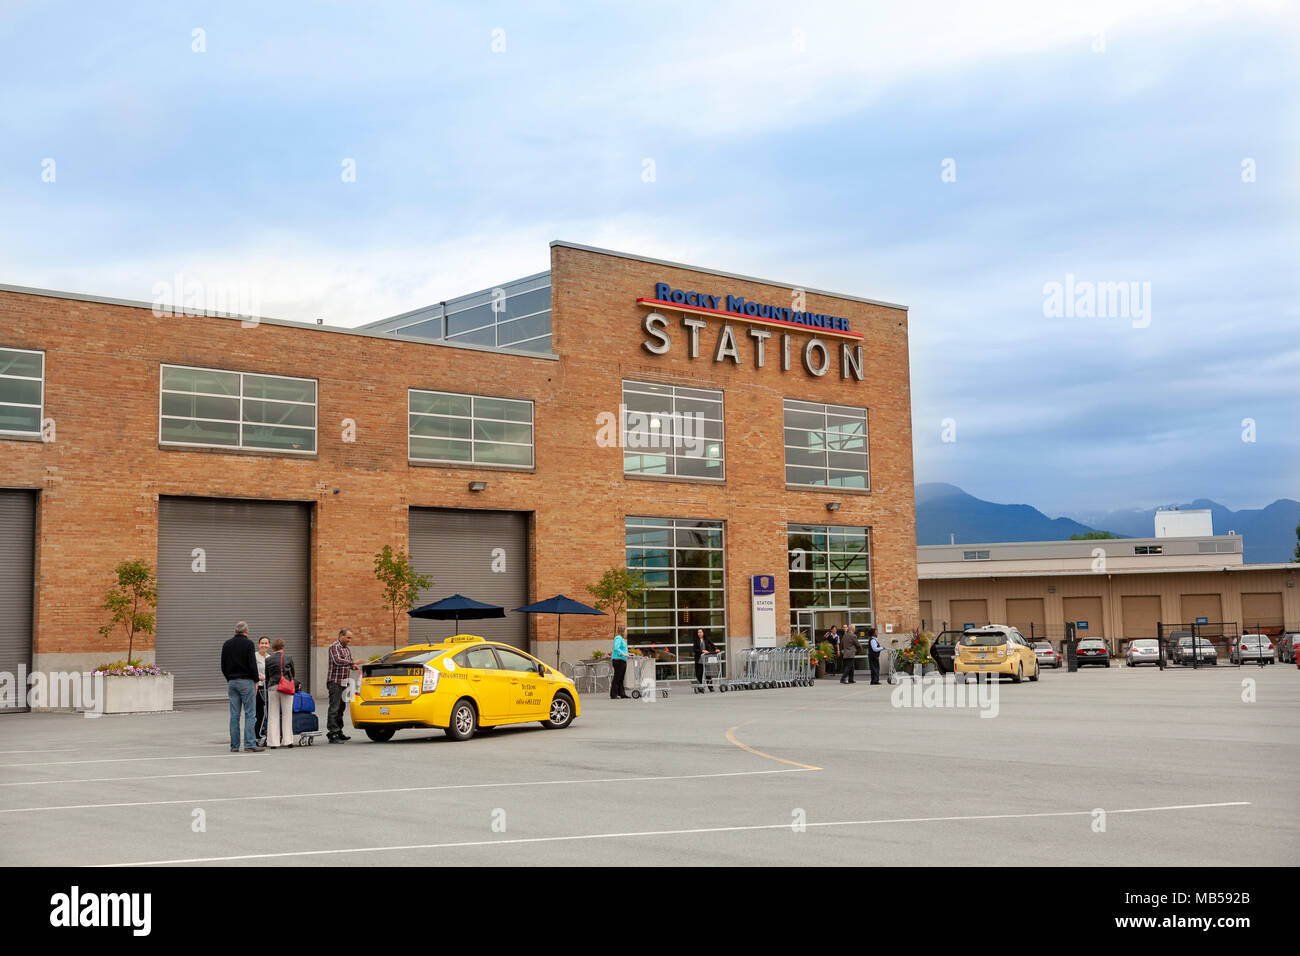 Rocky Mountaineer Station, Vancouver, Canada - Stock Image